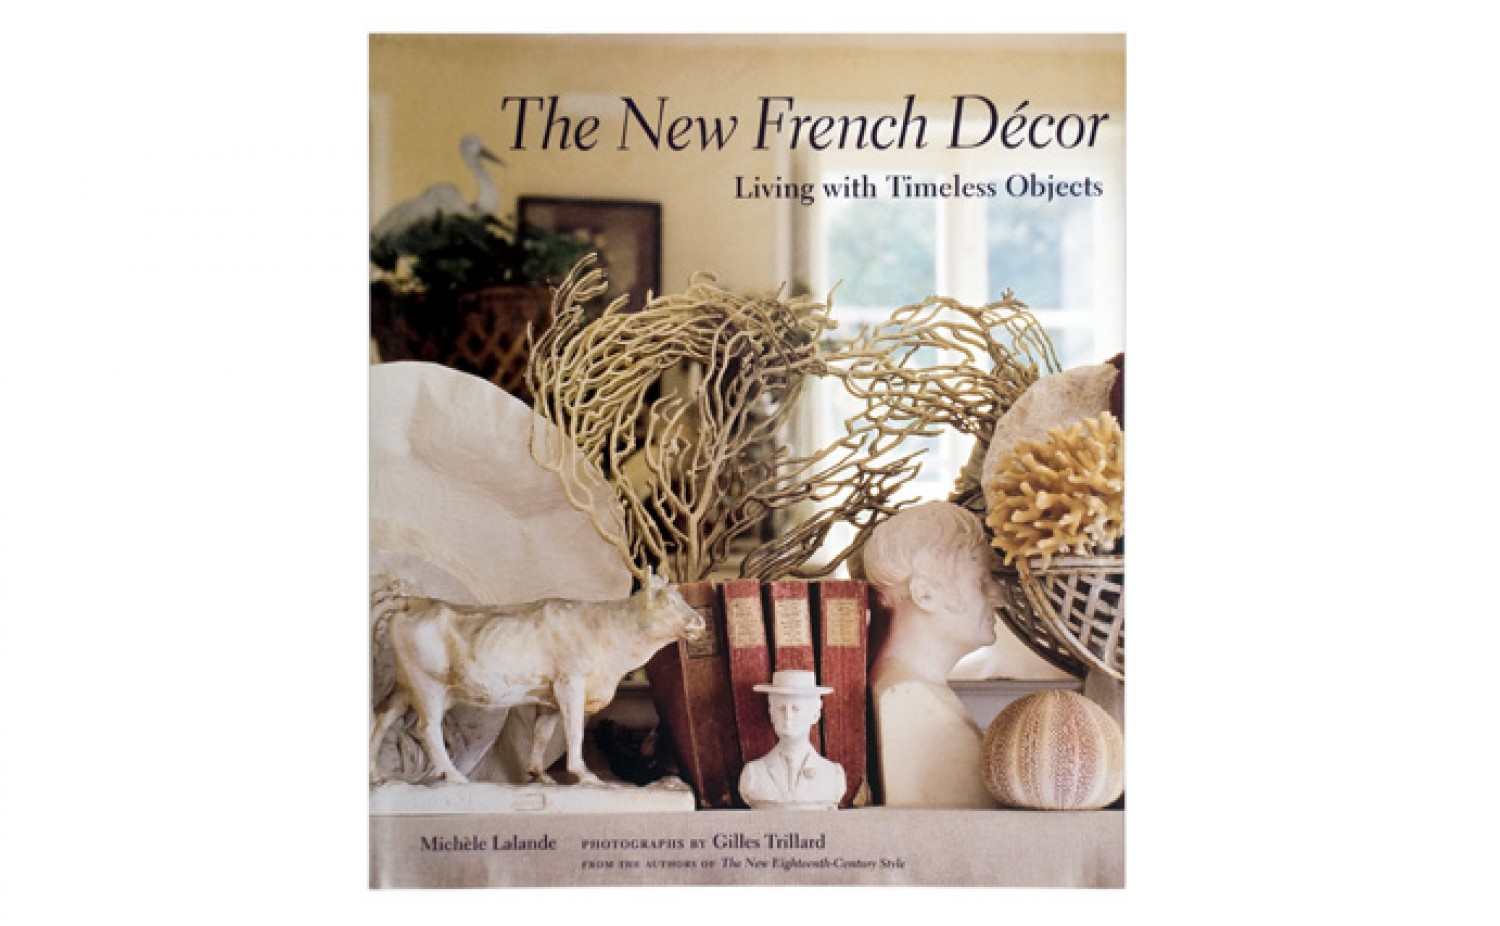 Luxury Home Decor Catalogs Primitive Home Decor Catalog Home Decor Catalogs. Luxury Home Decor Catalogs  Horchow Plano Neiman Marcus Furniture